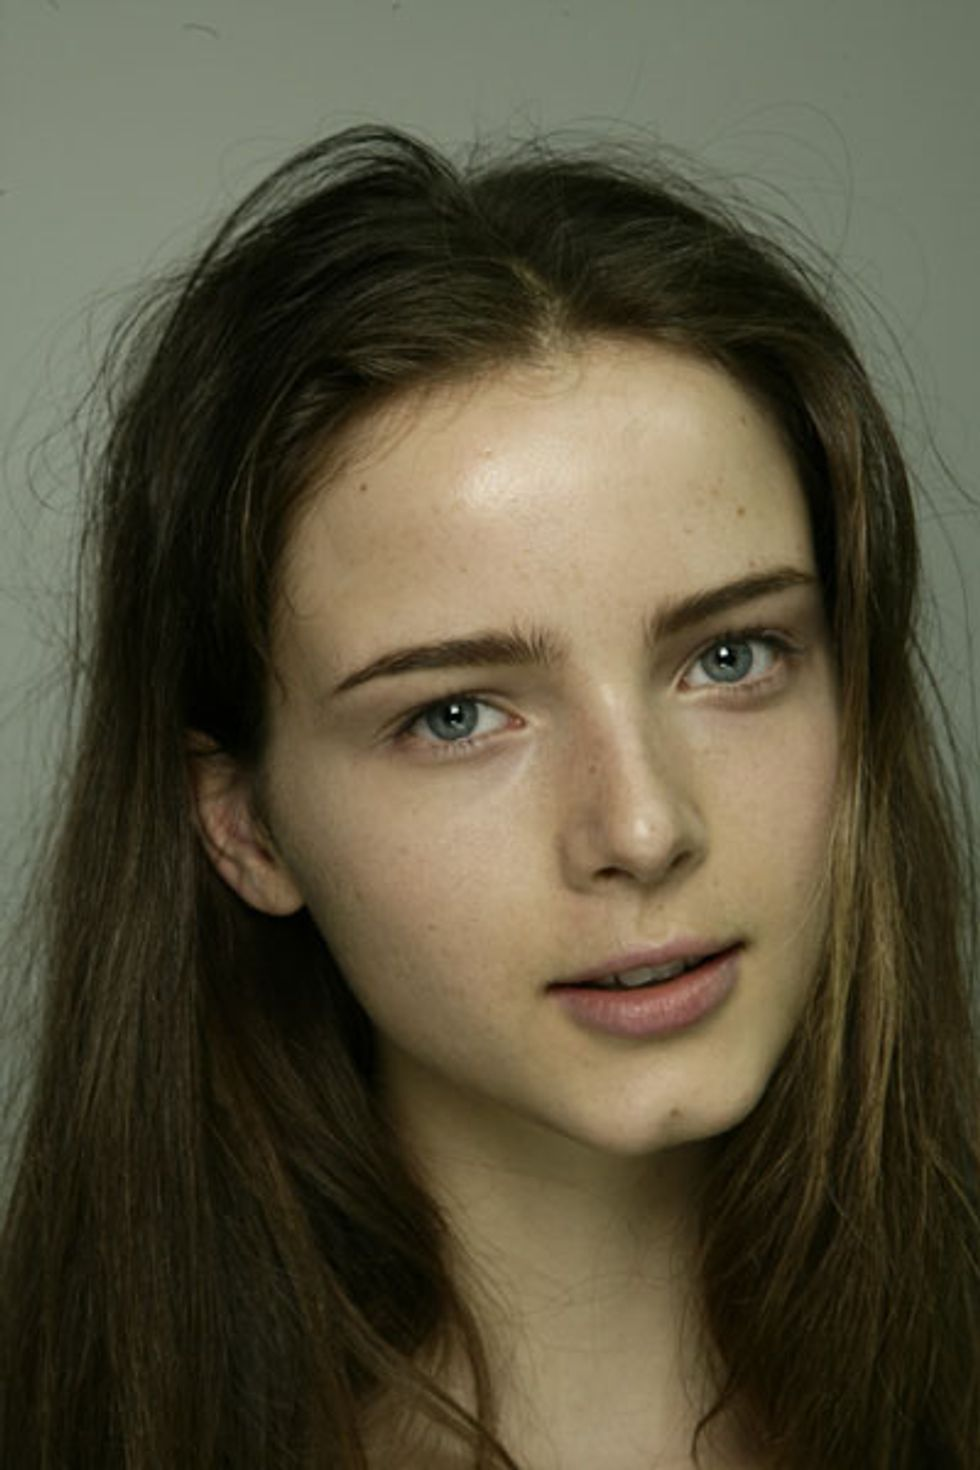 A Quick Backstage Chit-Chat with Dutch Model Anna de Rijk